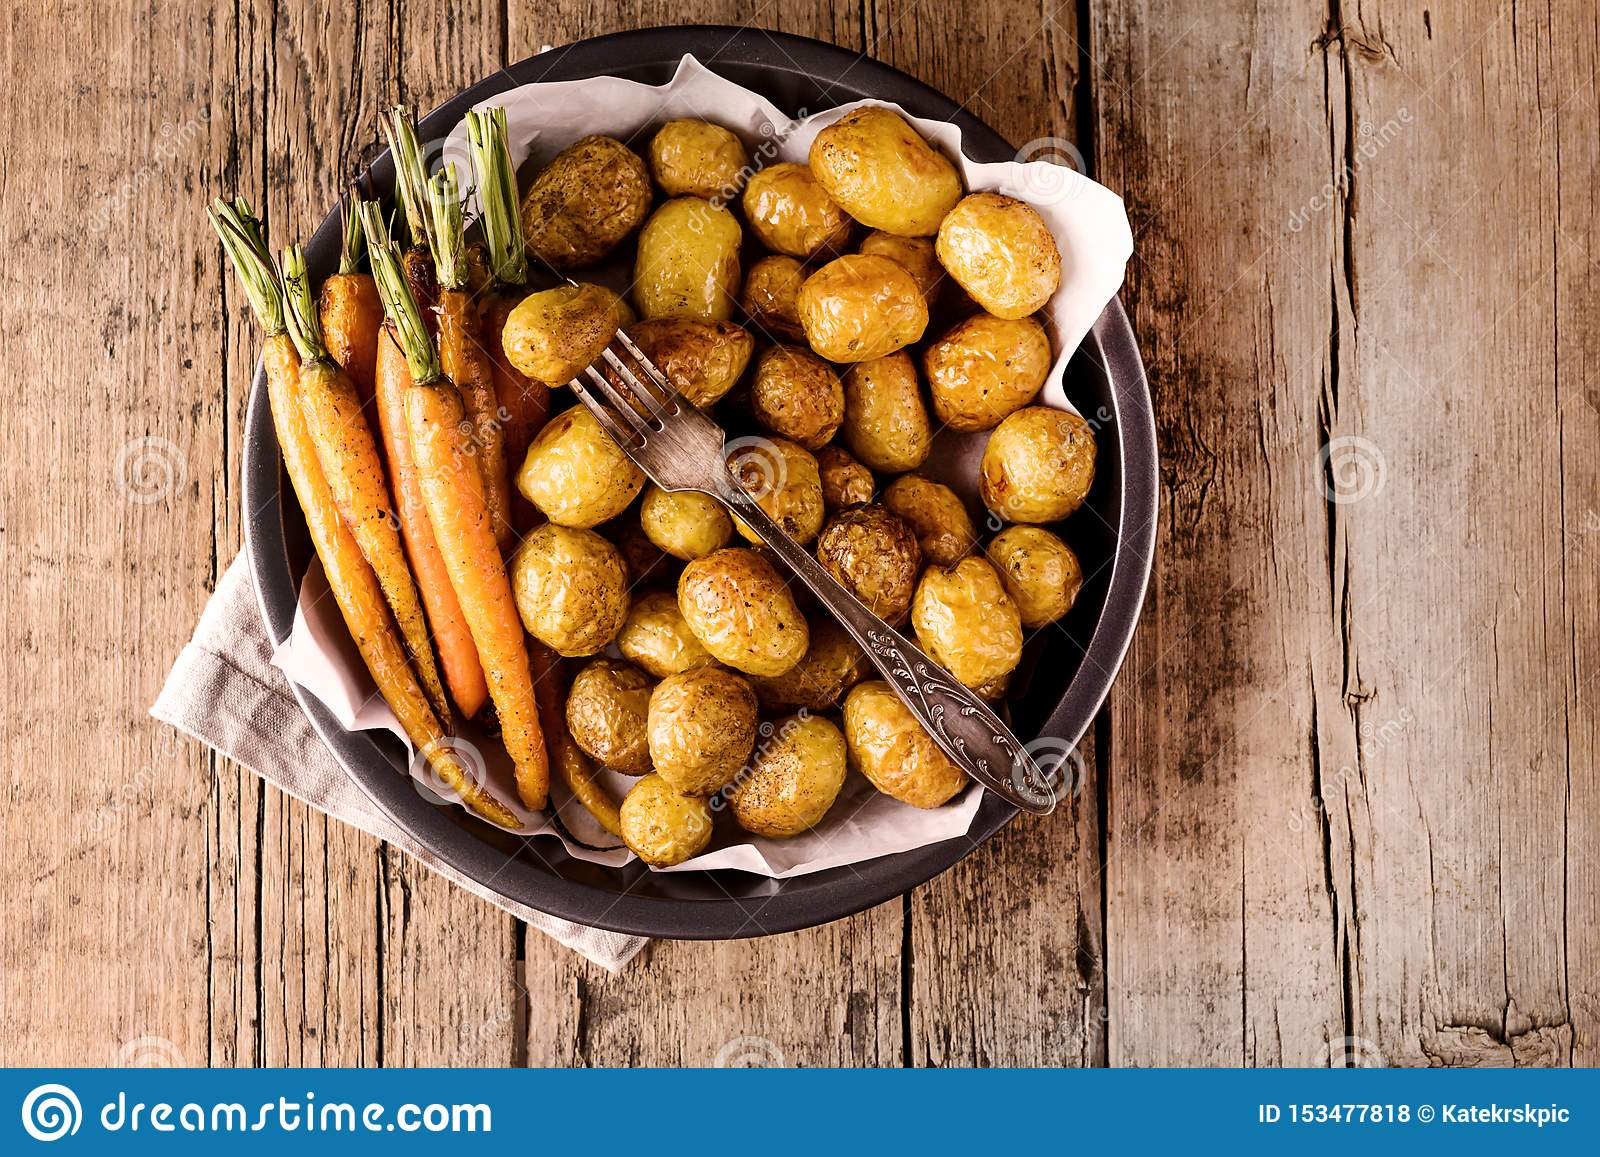 Baked Vegetables Grilled Carrots and Potatoes Vegetables Cooked on the Grill Wooden Background Healthy Diet Food Horizontal Copy